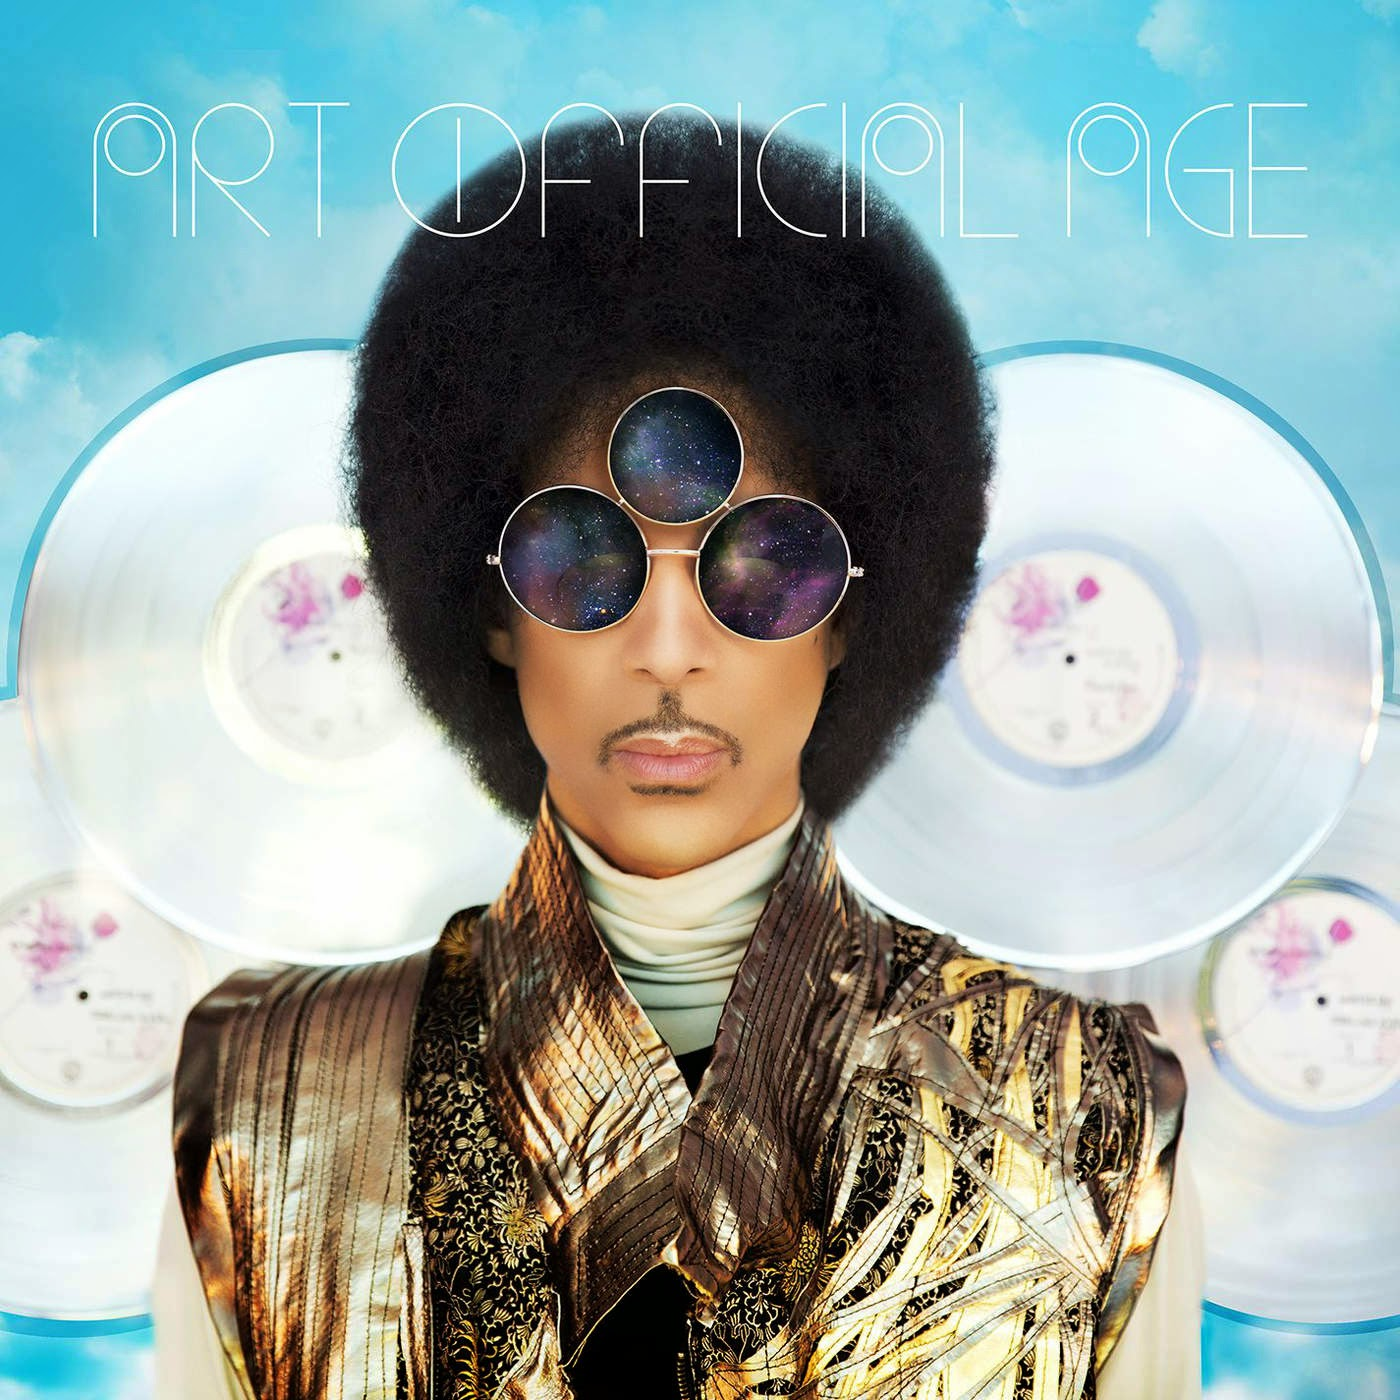 https://i2.wp.com/fatgayvegan.com/wp-content/uploads/2014/10/prince-art-official-age.jpg?fit=1400%2C1400